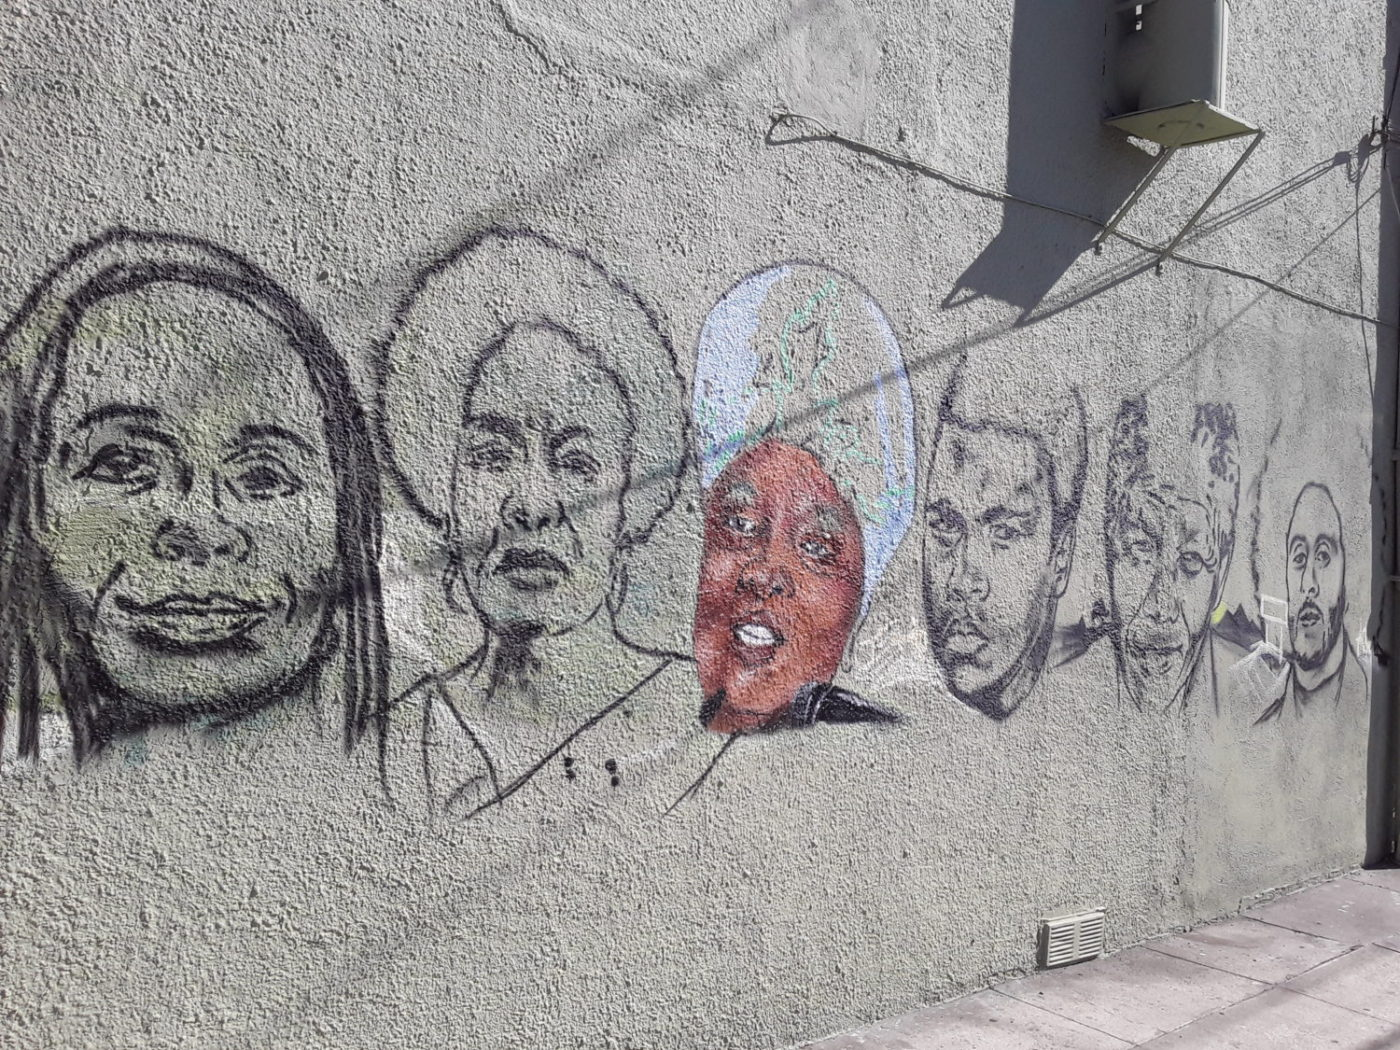 Black muralist Kufu attacks the walls of East Oakland to show us our fighting heart and soul